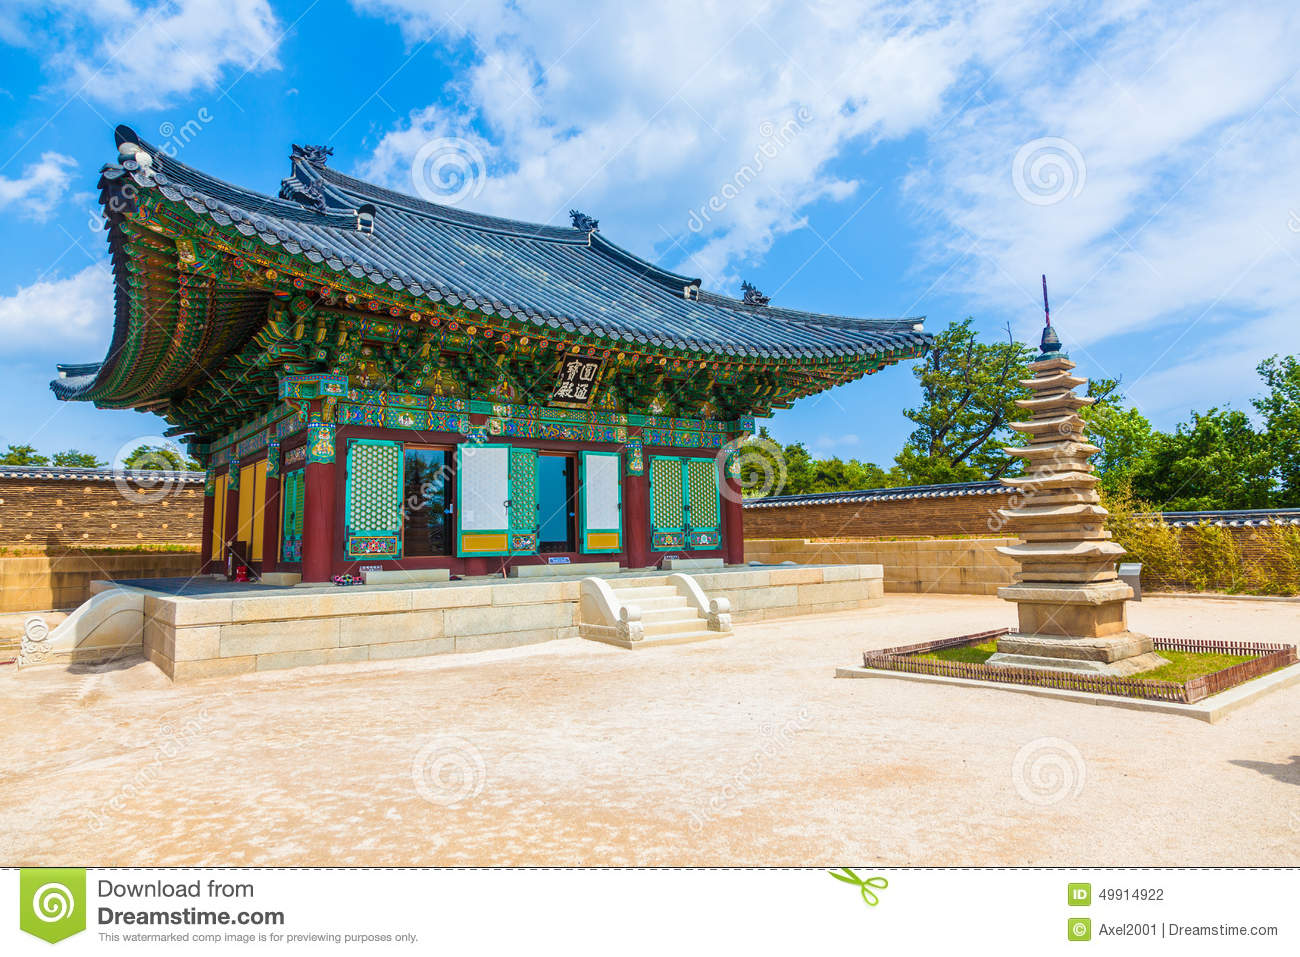 Naksansa Temple In Sokcho, South Korea. Stock Photo.